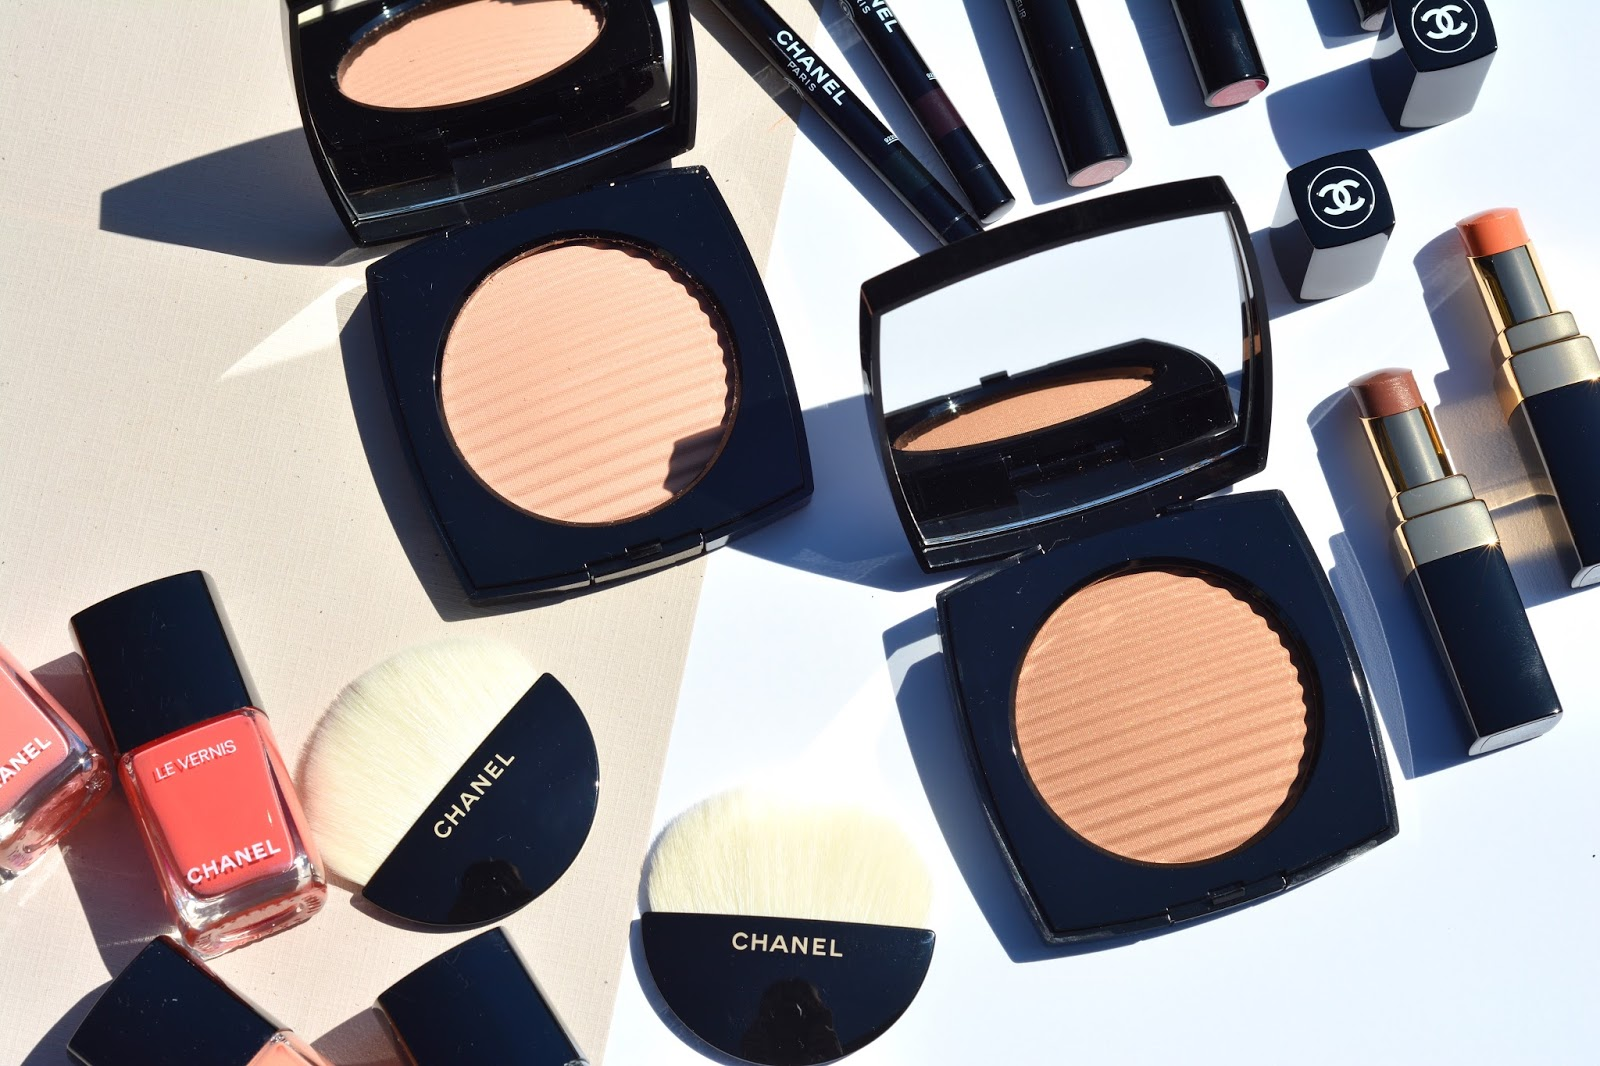 chanel summer 2017 cruise collection makeup review swatches face look